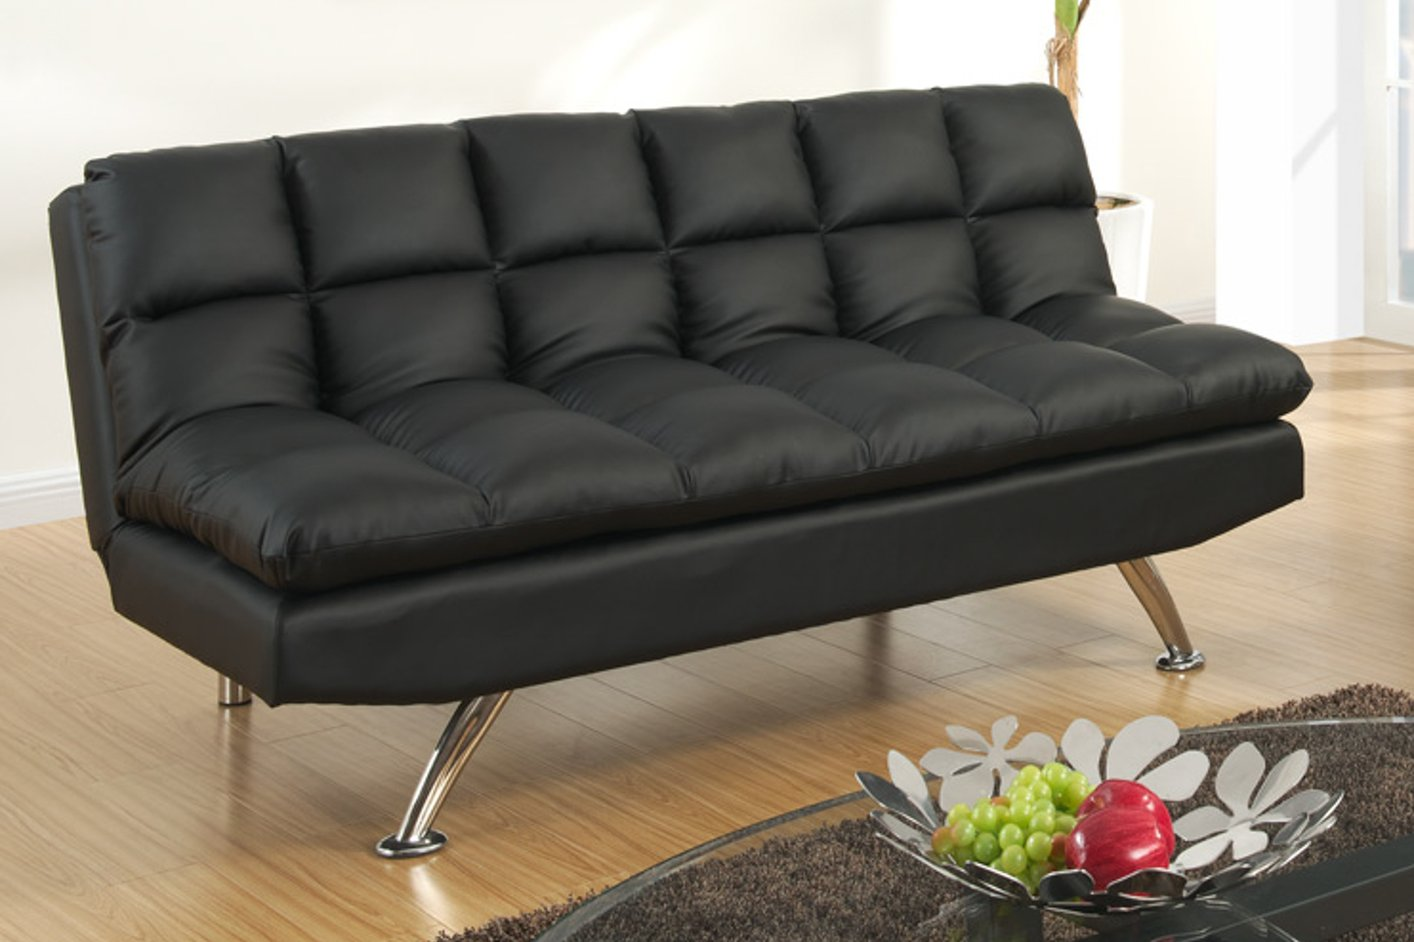 Poundex F7013 Black Twin Size Leather Sofa Bed StealASofa – Twin Sofa Sleeper